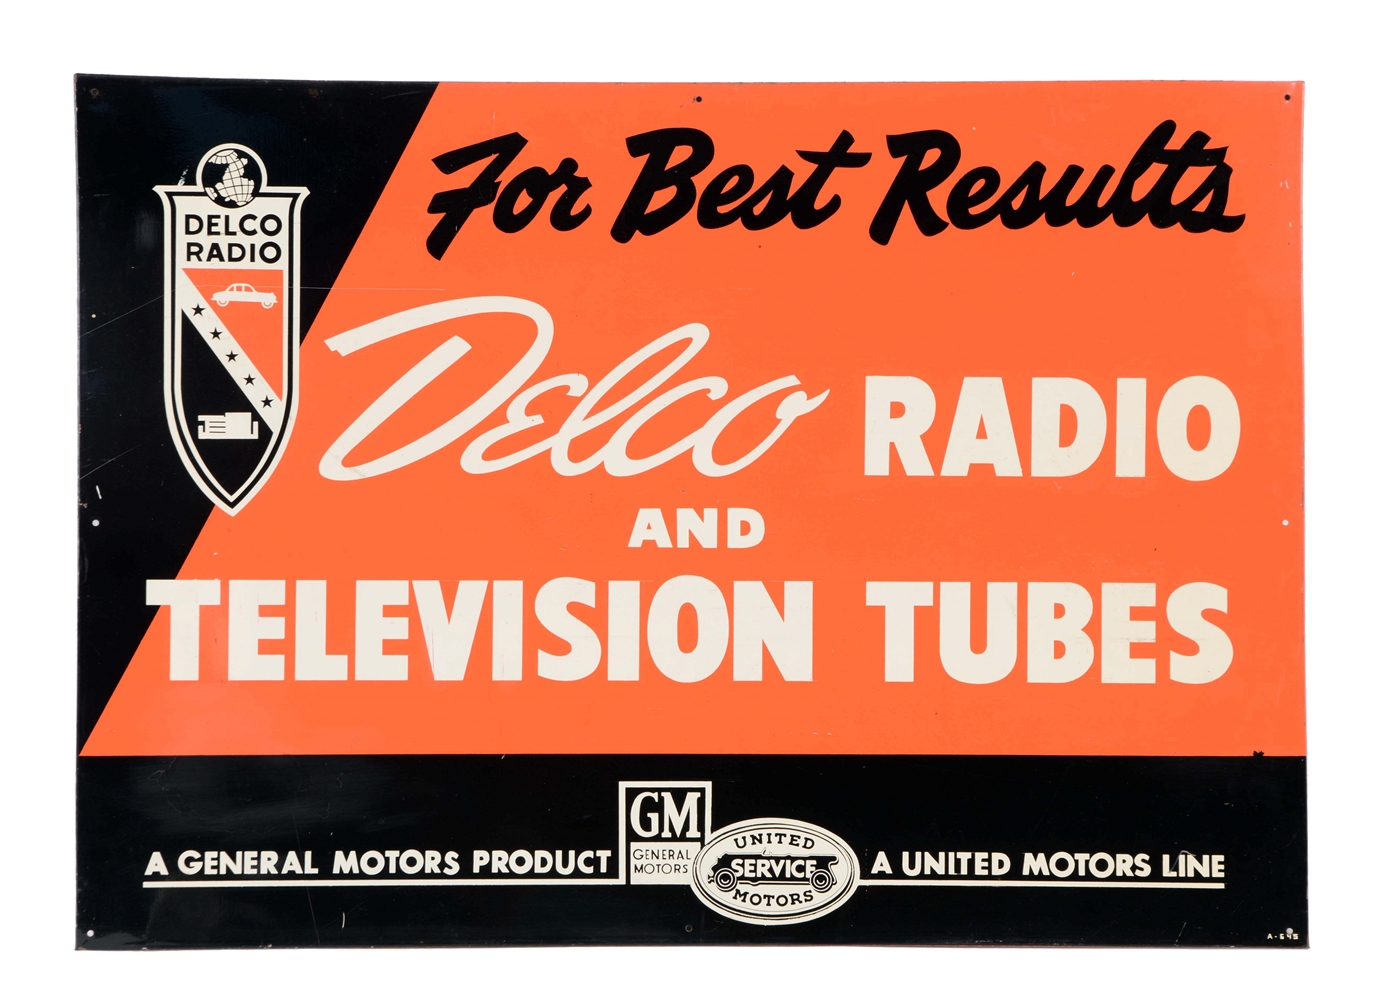 Delco Radio & Television Tubes Sign.